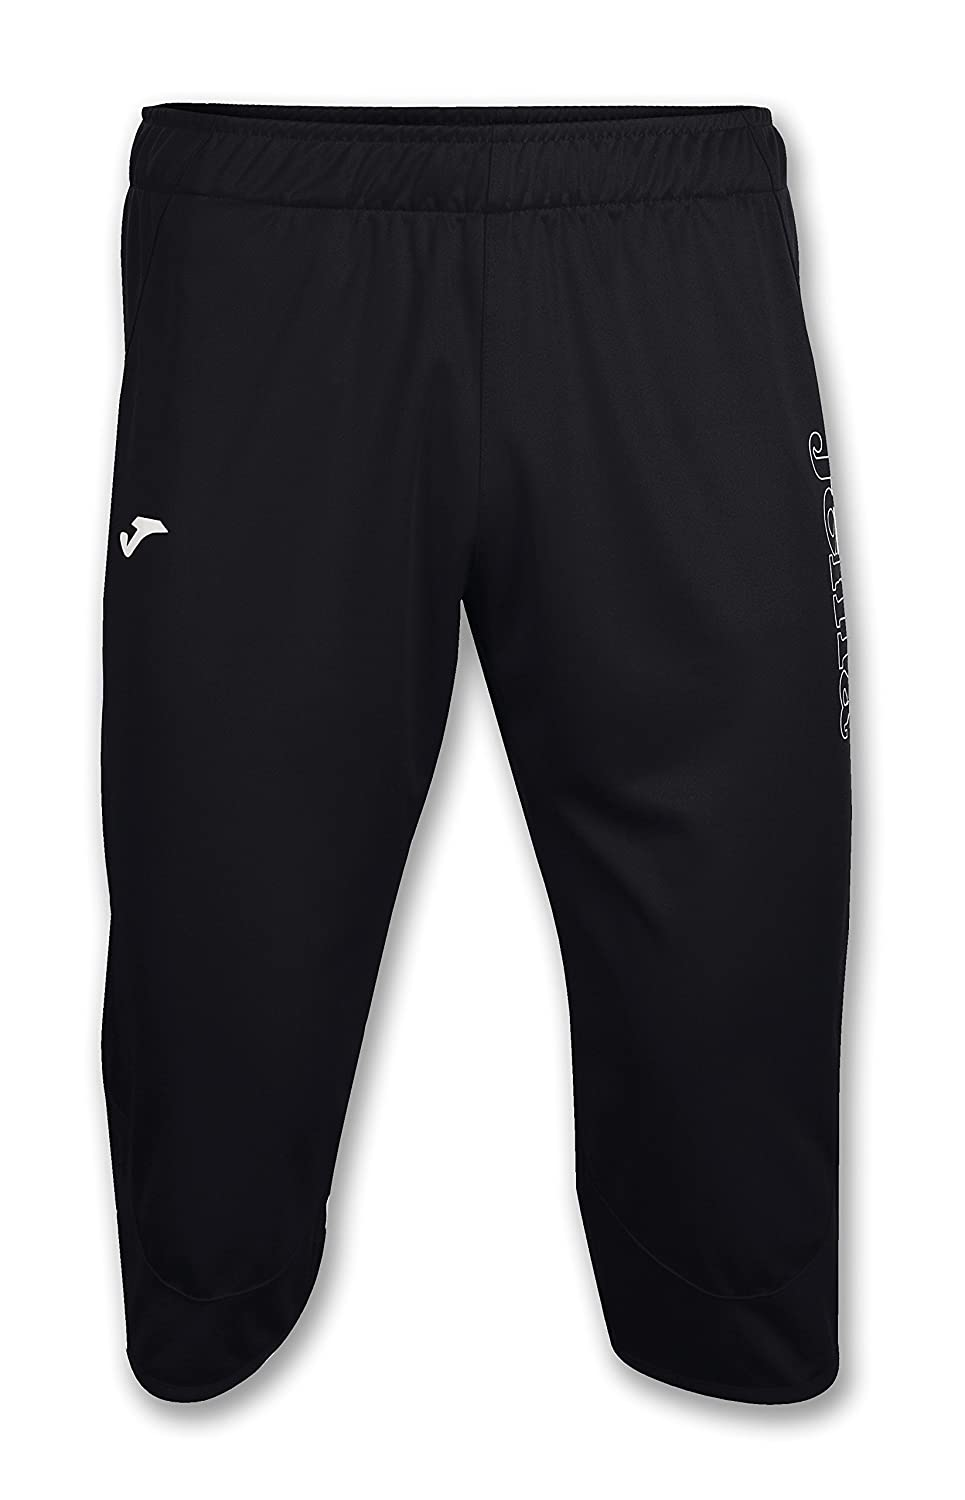 Joma Vela - Men's pants, colour black Size Joma Vela - Men's pants